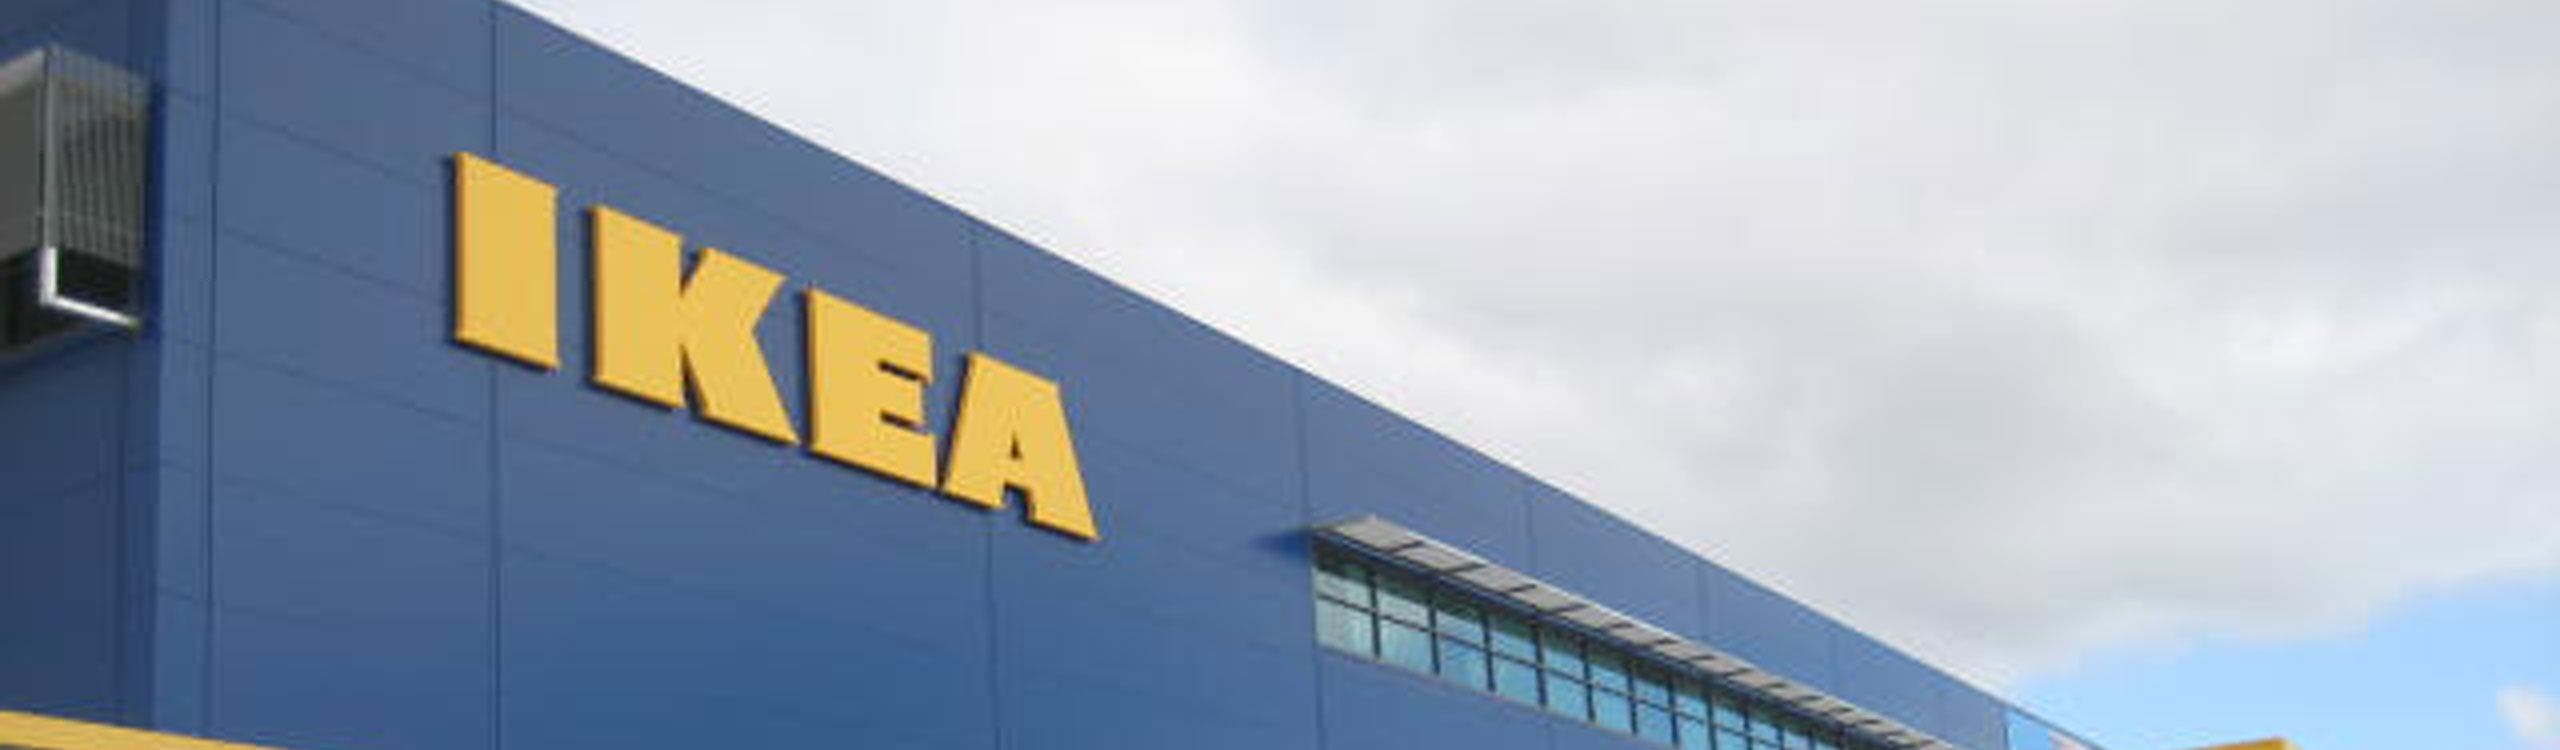 IKEA Superstore